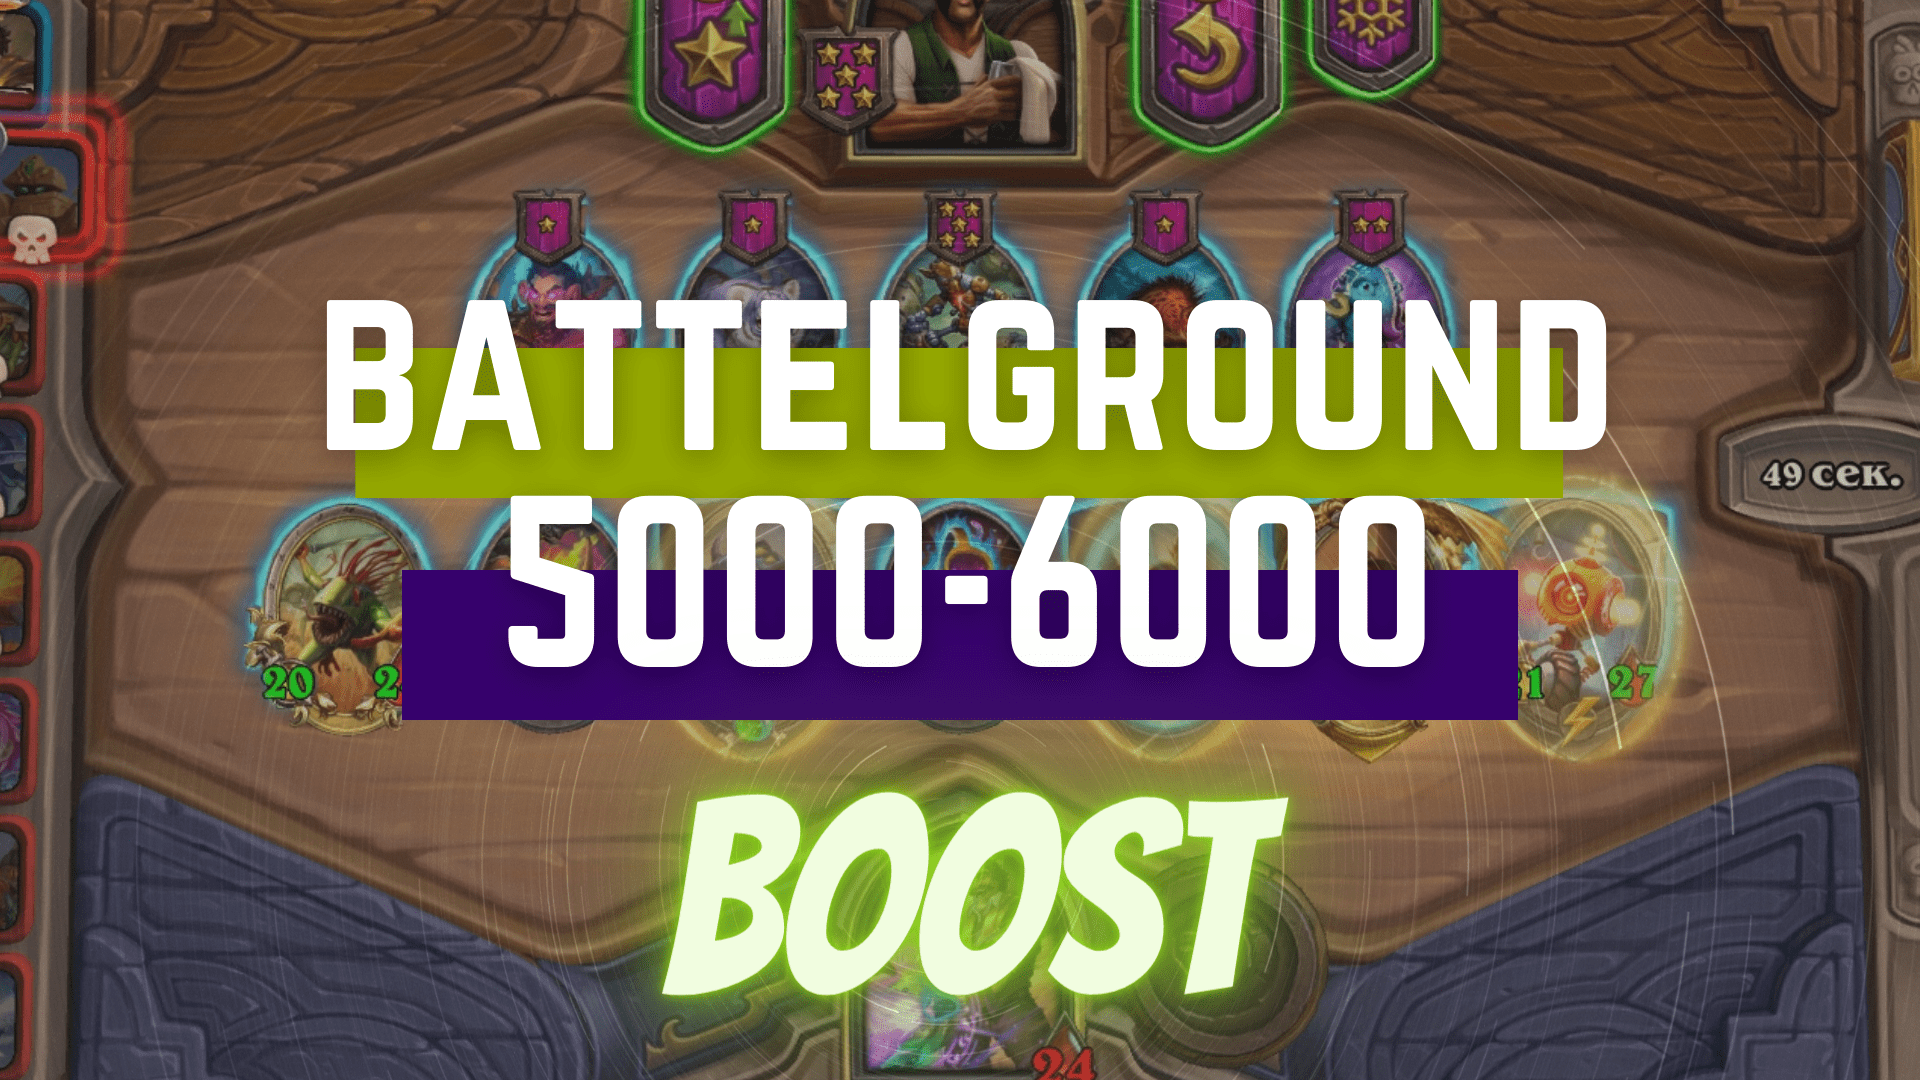 [Battlegrounds rating] Boost from 5000 to 6000 GBD - e2p.com